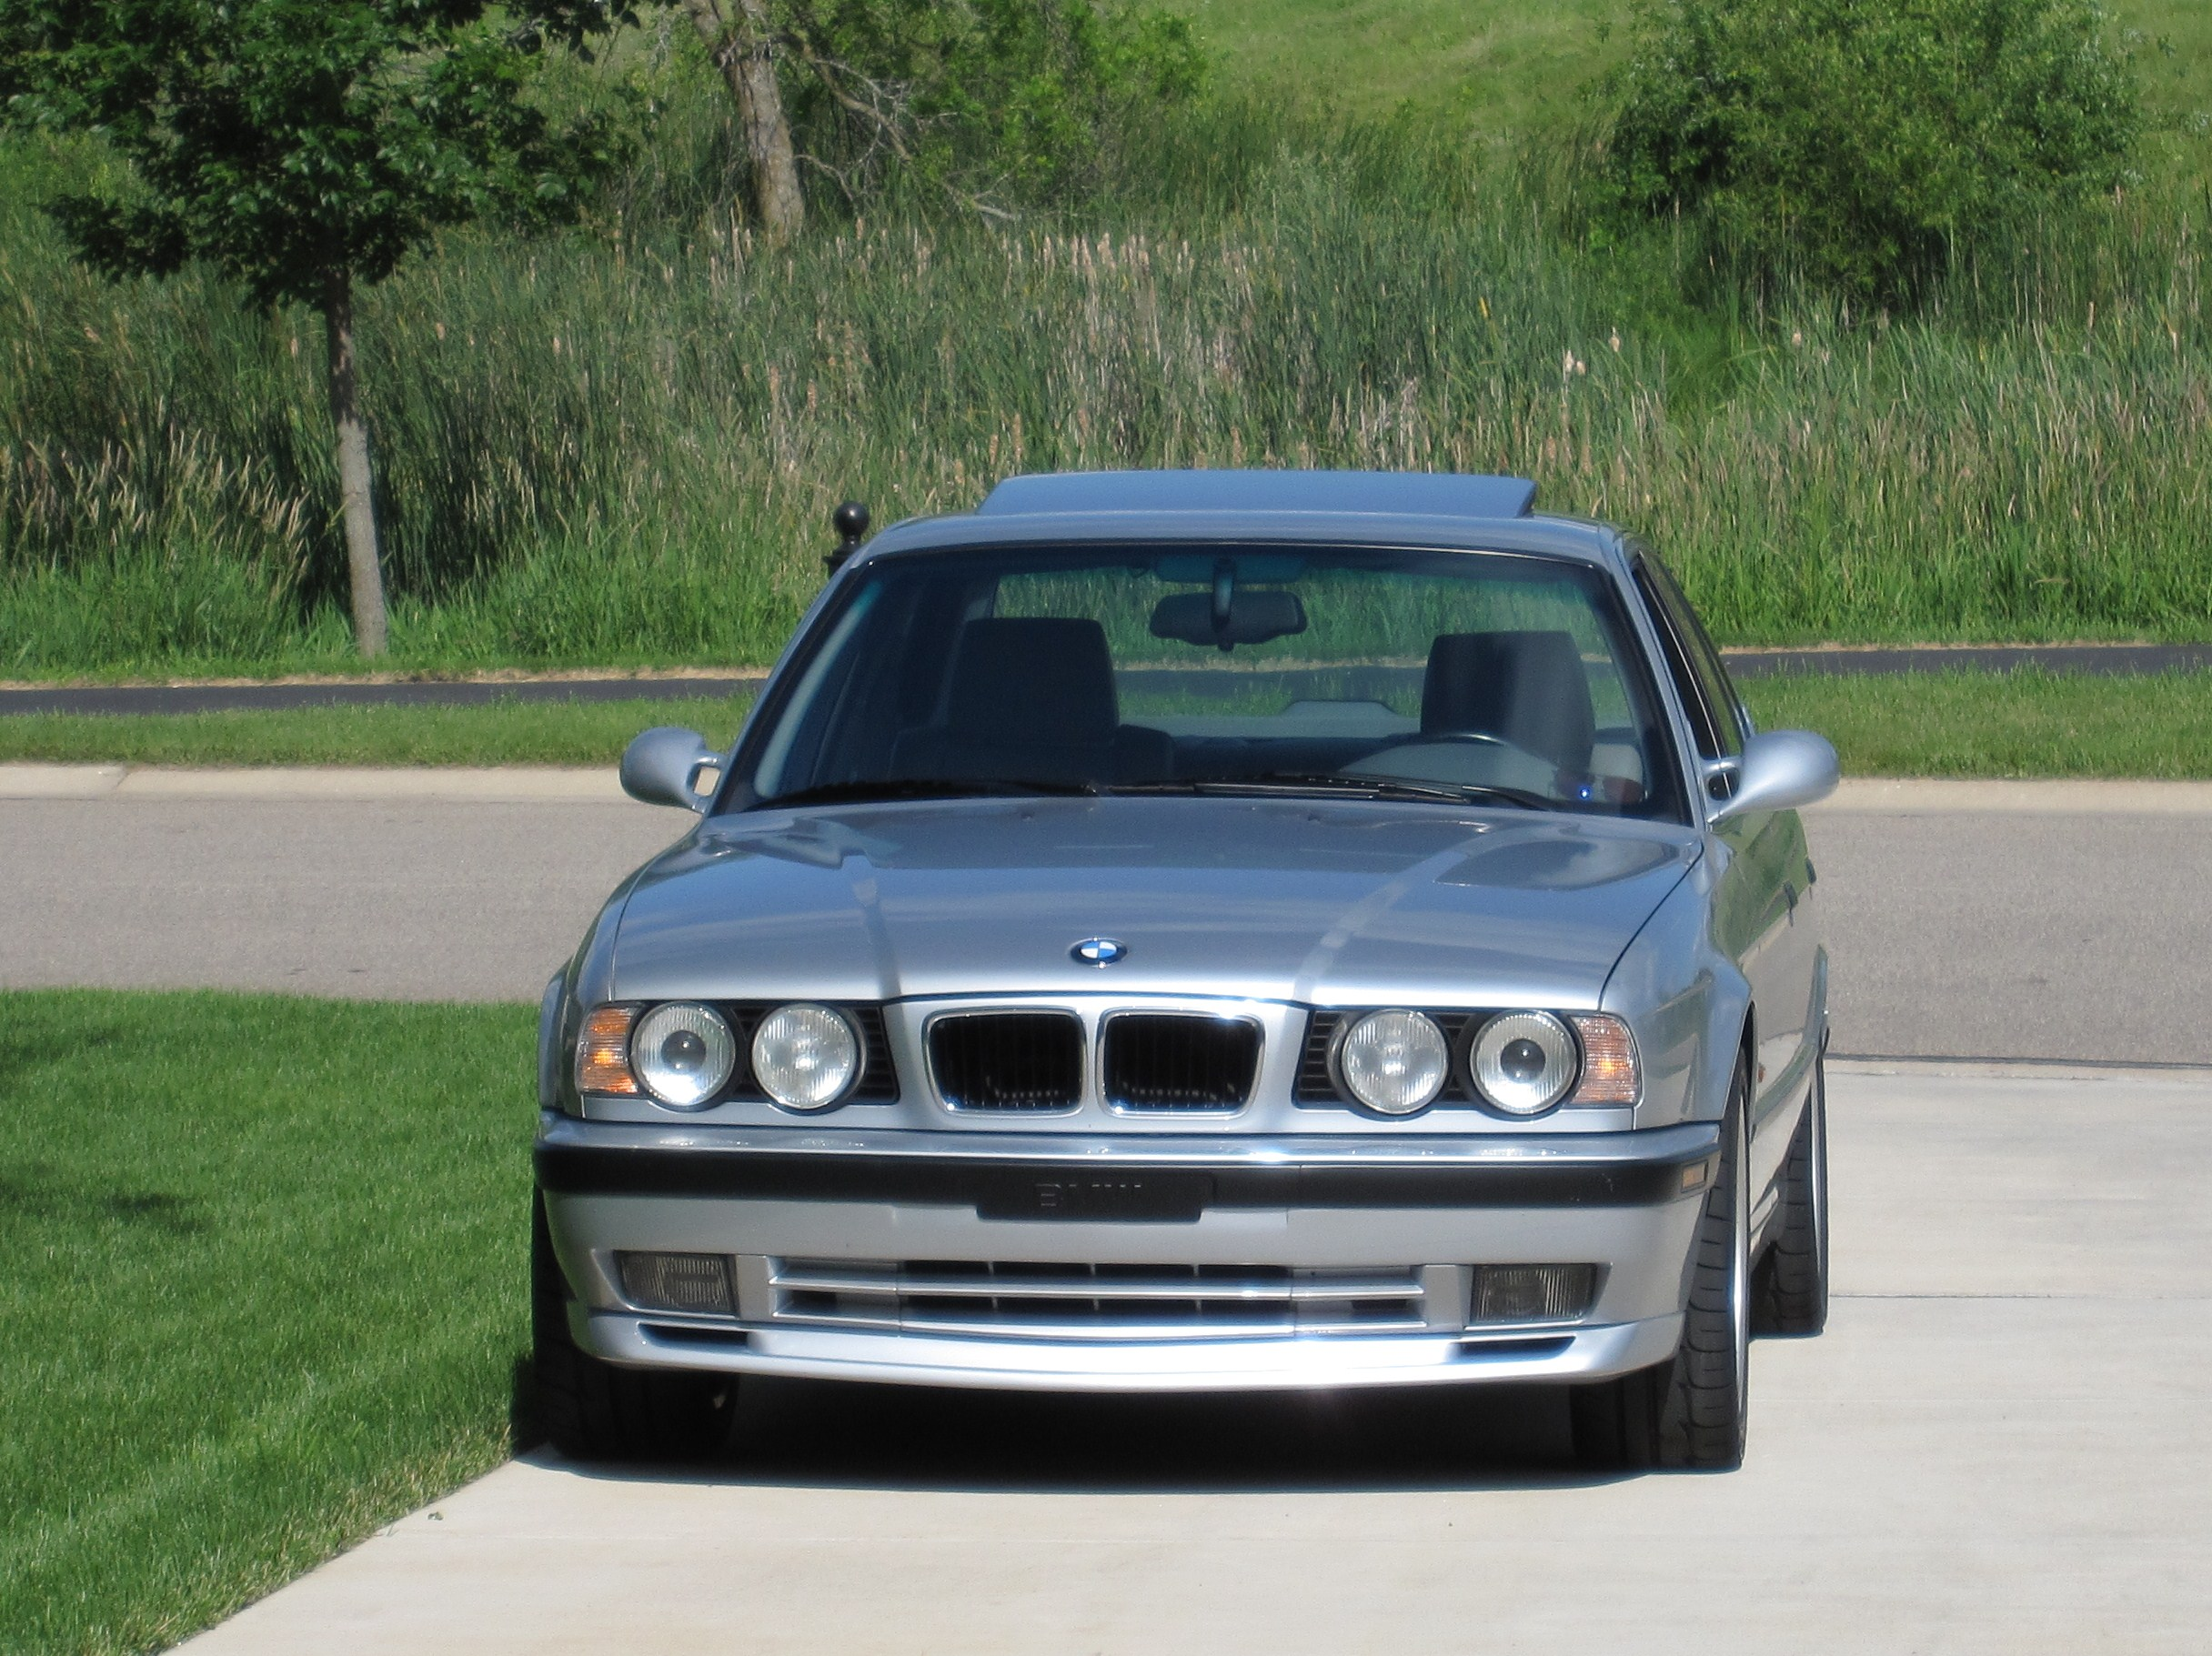 1995 BMW Exclusive Edition - 540i Sport-015.jpg